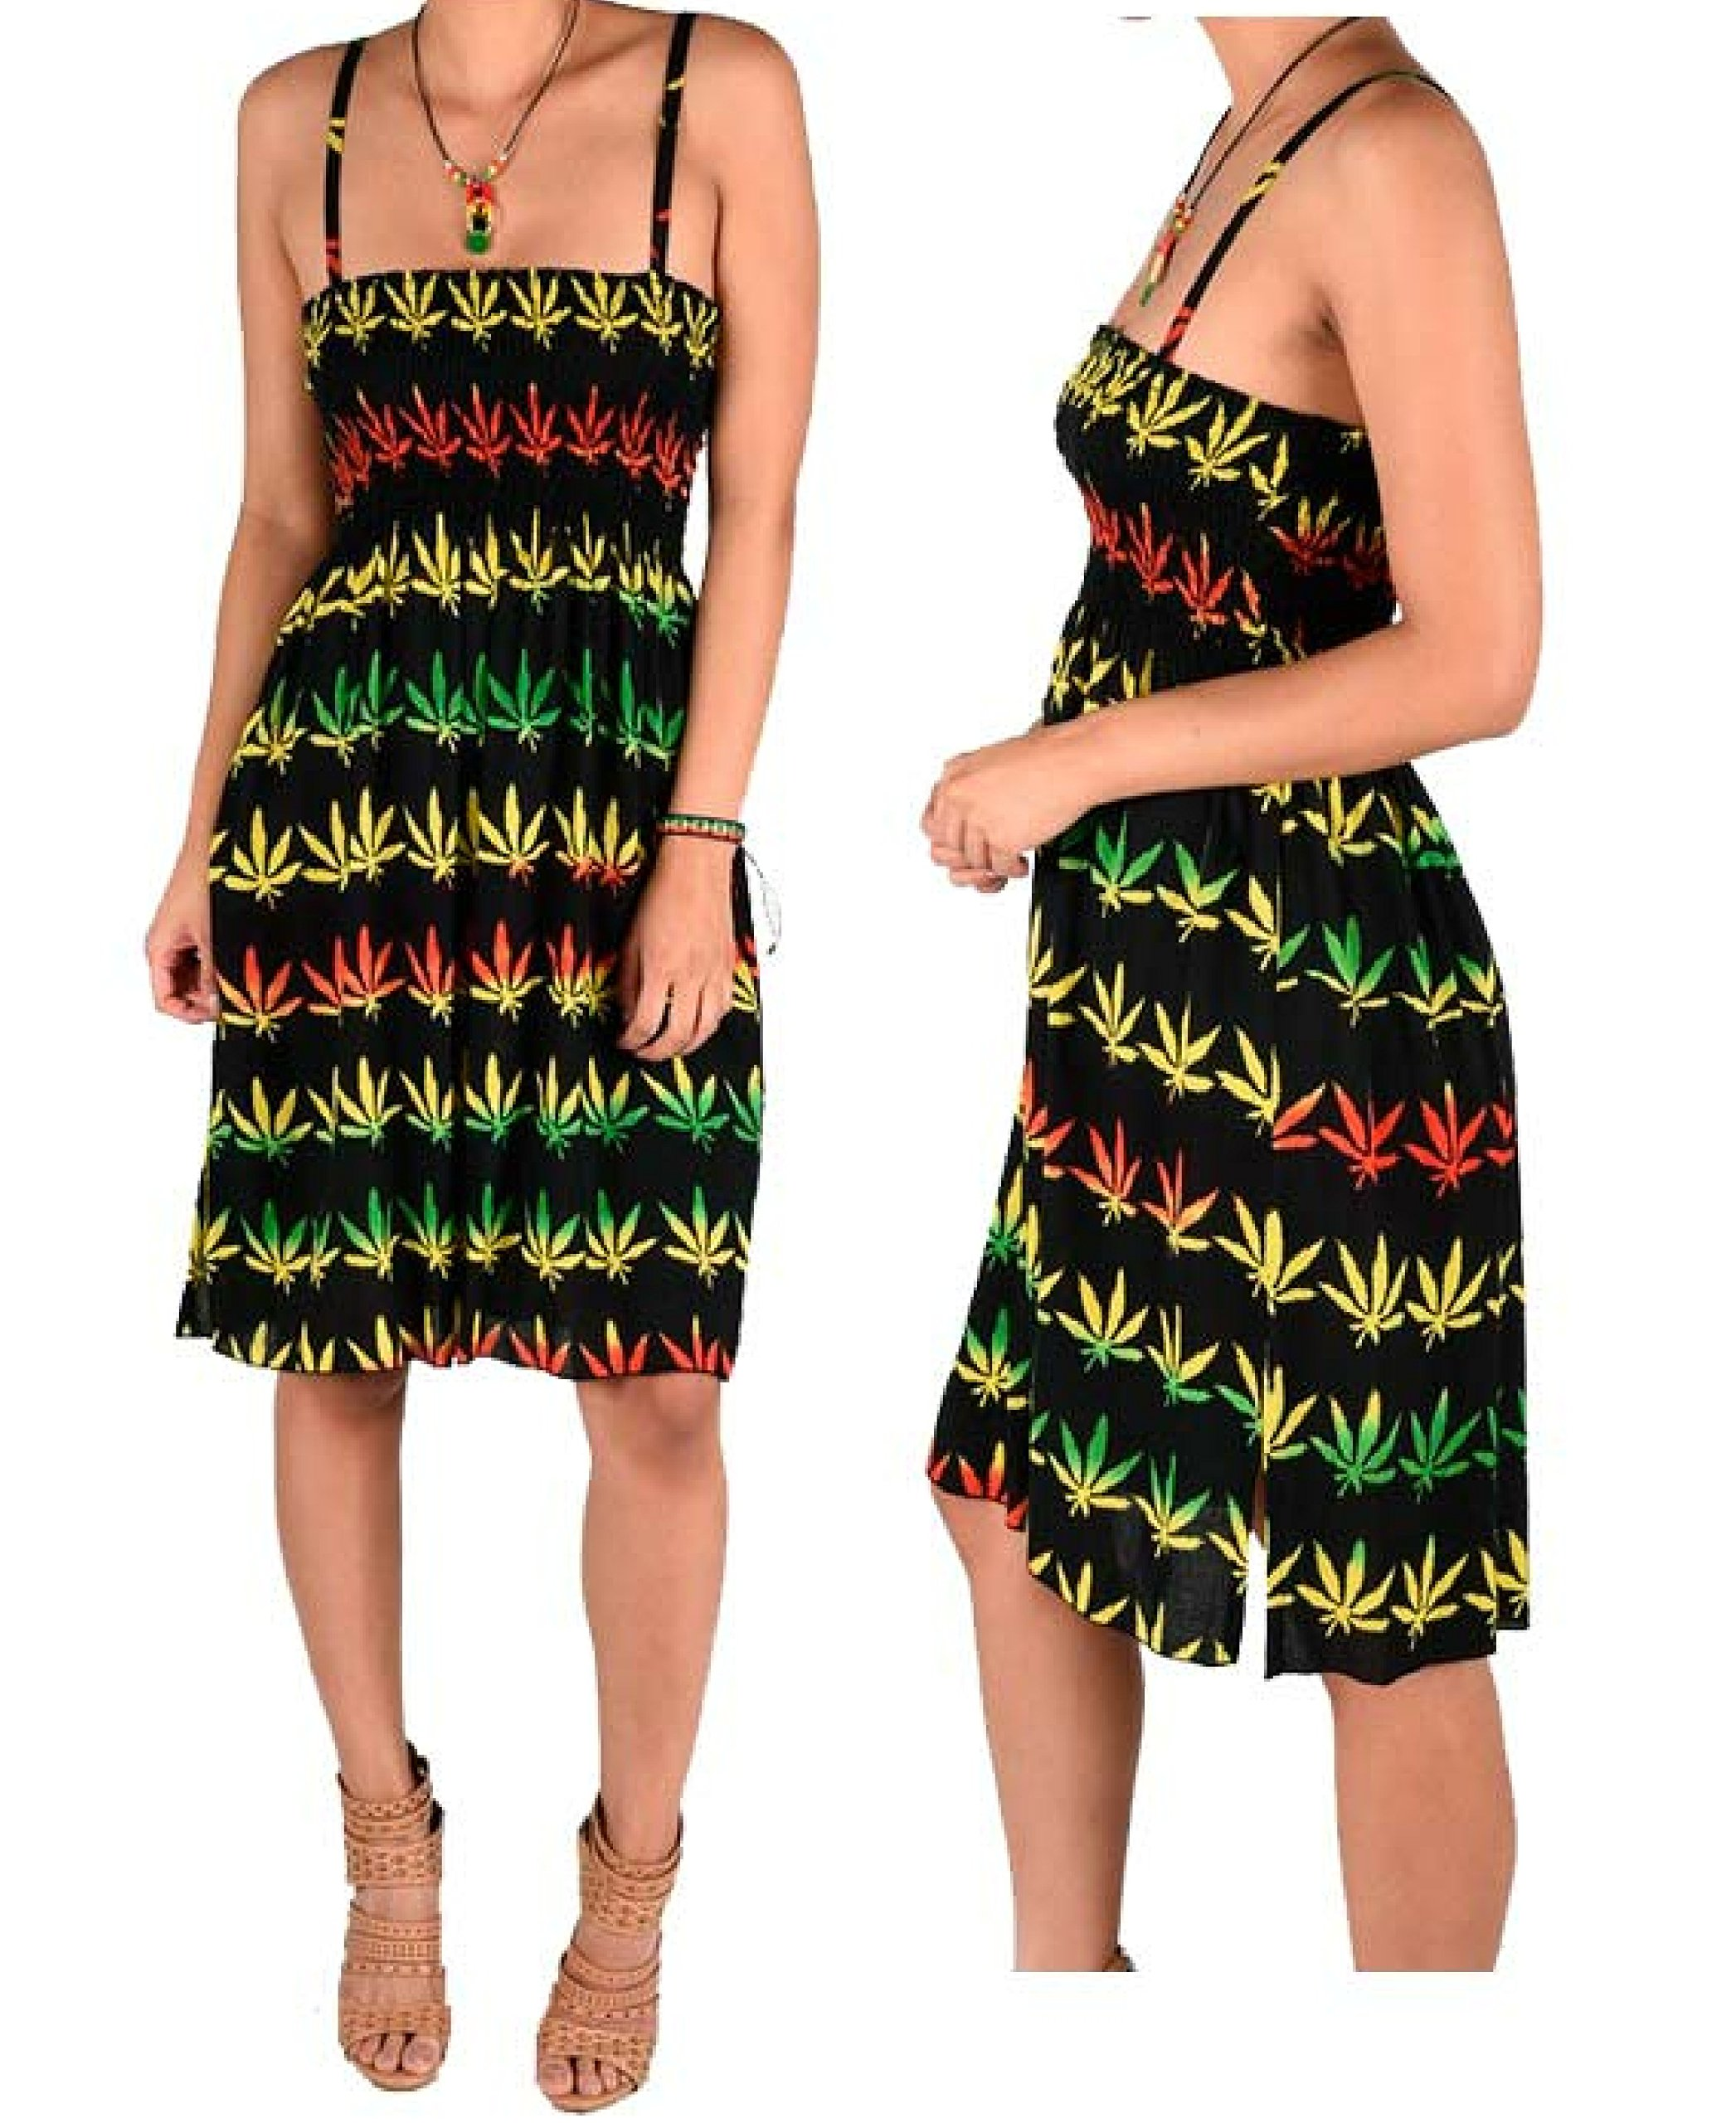 Marijuana Leaf Skirt Dress Rasta Dreadlocks Beach Cannabis Weed Blunt Pleated Dress 1 Size Fit Most